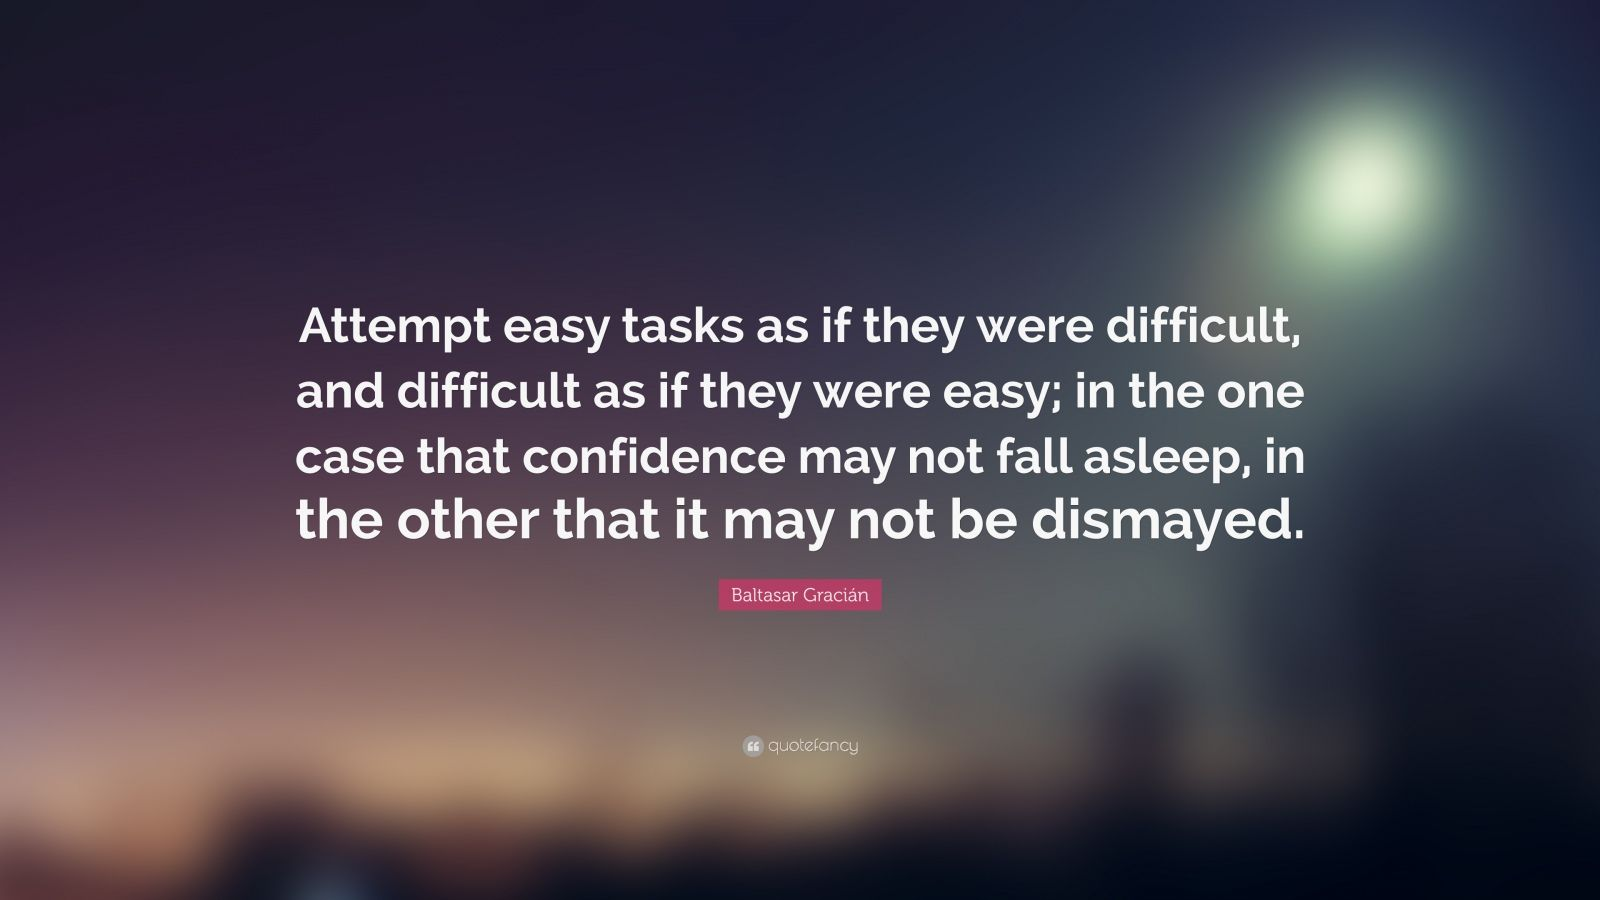 """Baltasar Gracián Quote: """"Attempt easy tasks as if they were difficult, and difficult as if they were easy; in the one case that confidence may not fall asleep, in the other that it may not be dismayed."""""""